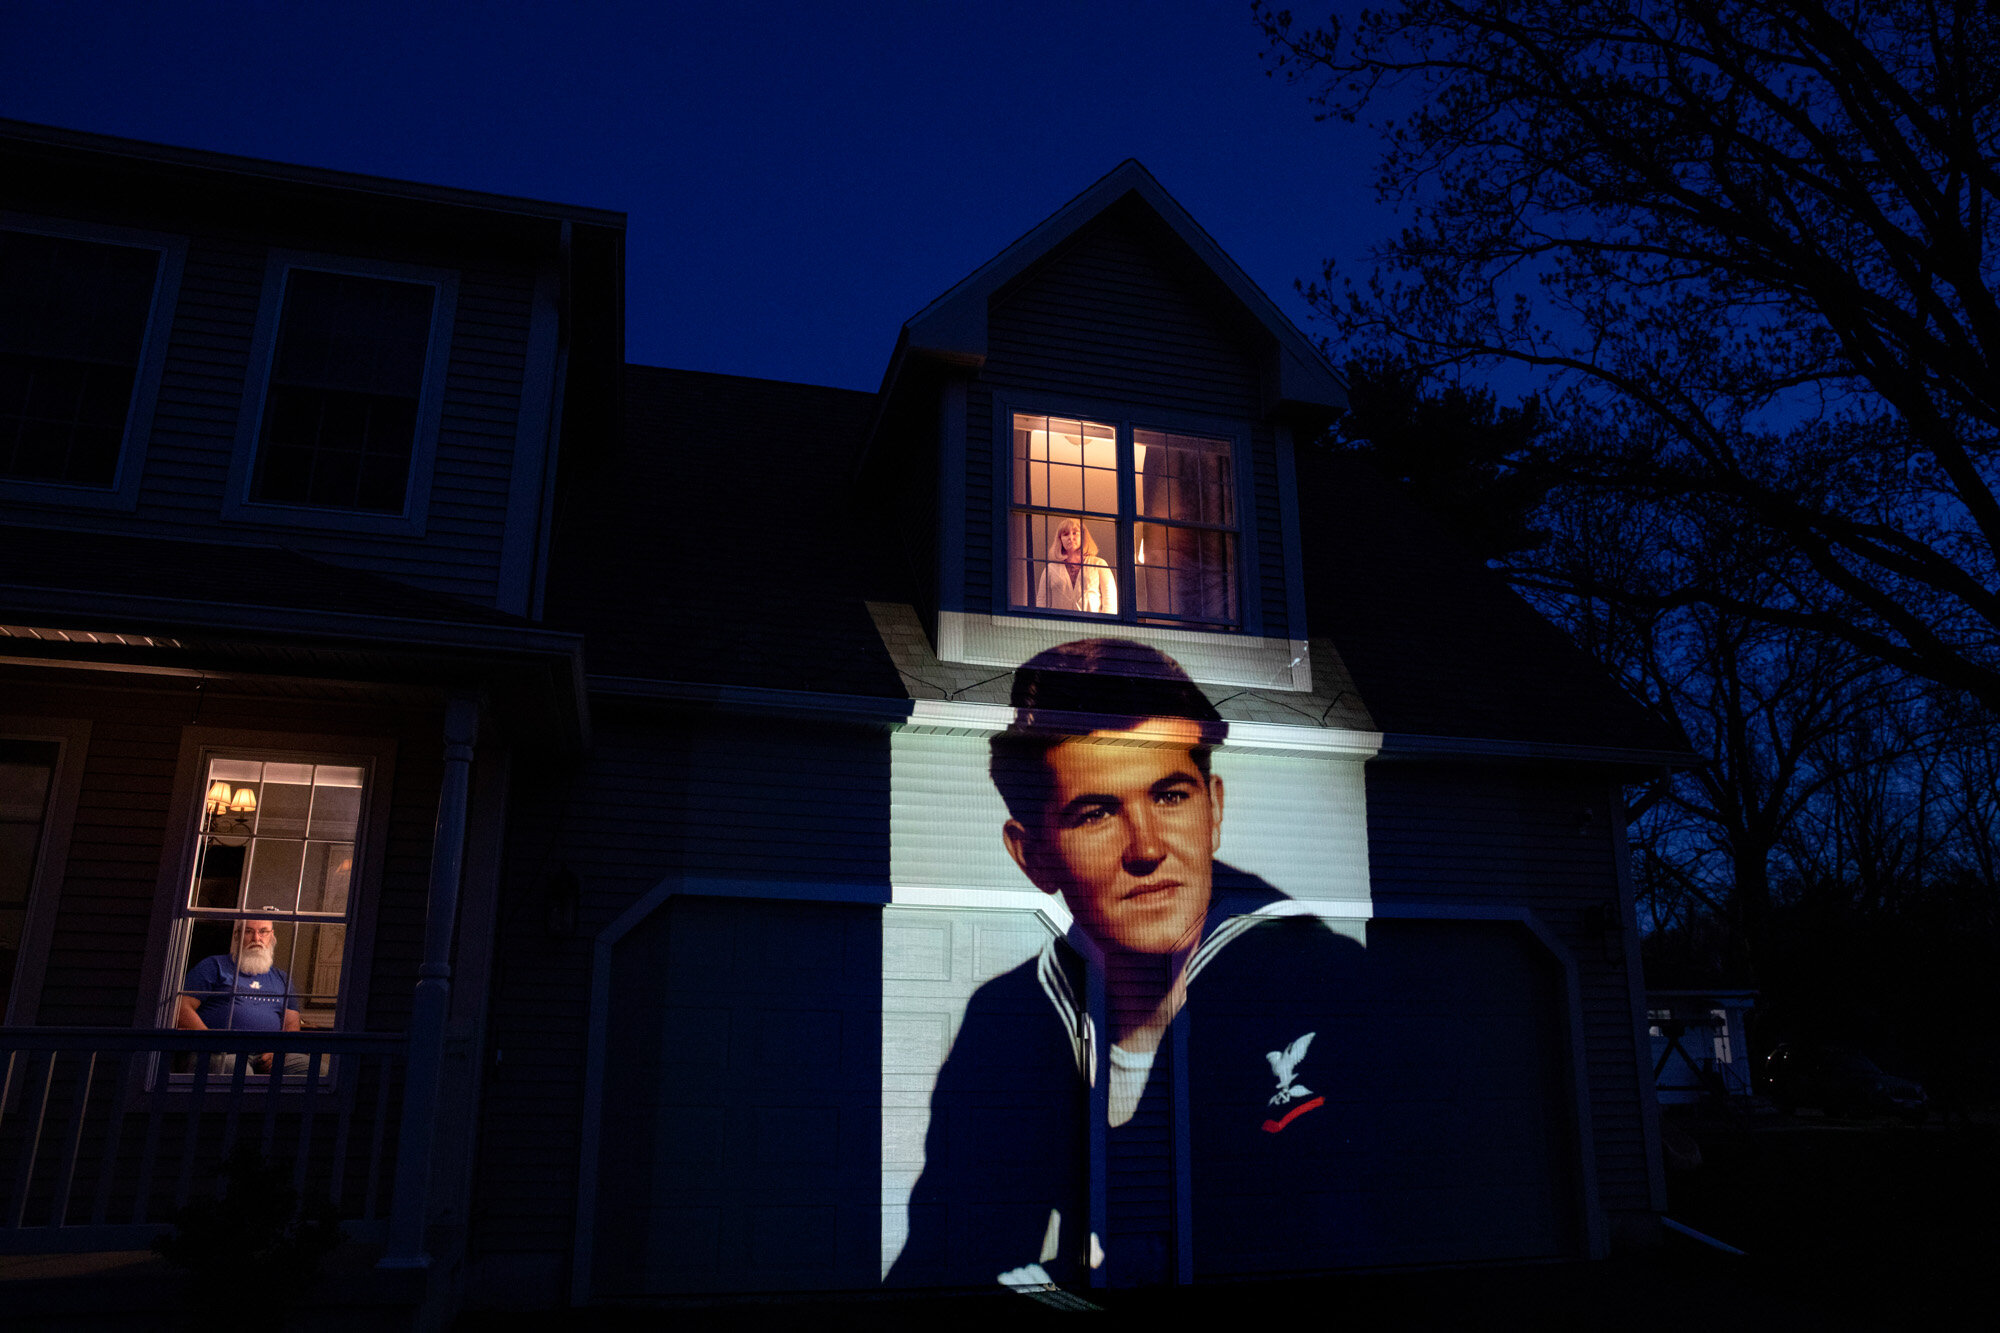 An image of U.S. Navy veteran Stephen Kulig is projected onto the home of his daughter, Elizabeth DeForest, as she looks out the window of a spare bedroom while her husband, Kevin, sits downstairs, in Chicopee, Mass., on May 3, 2020. Kulig, a resident of the Soldier's Home in Holyoke, Mass., died from COVID-19 at the age of 92. (AP Photo/David Goldman)